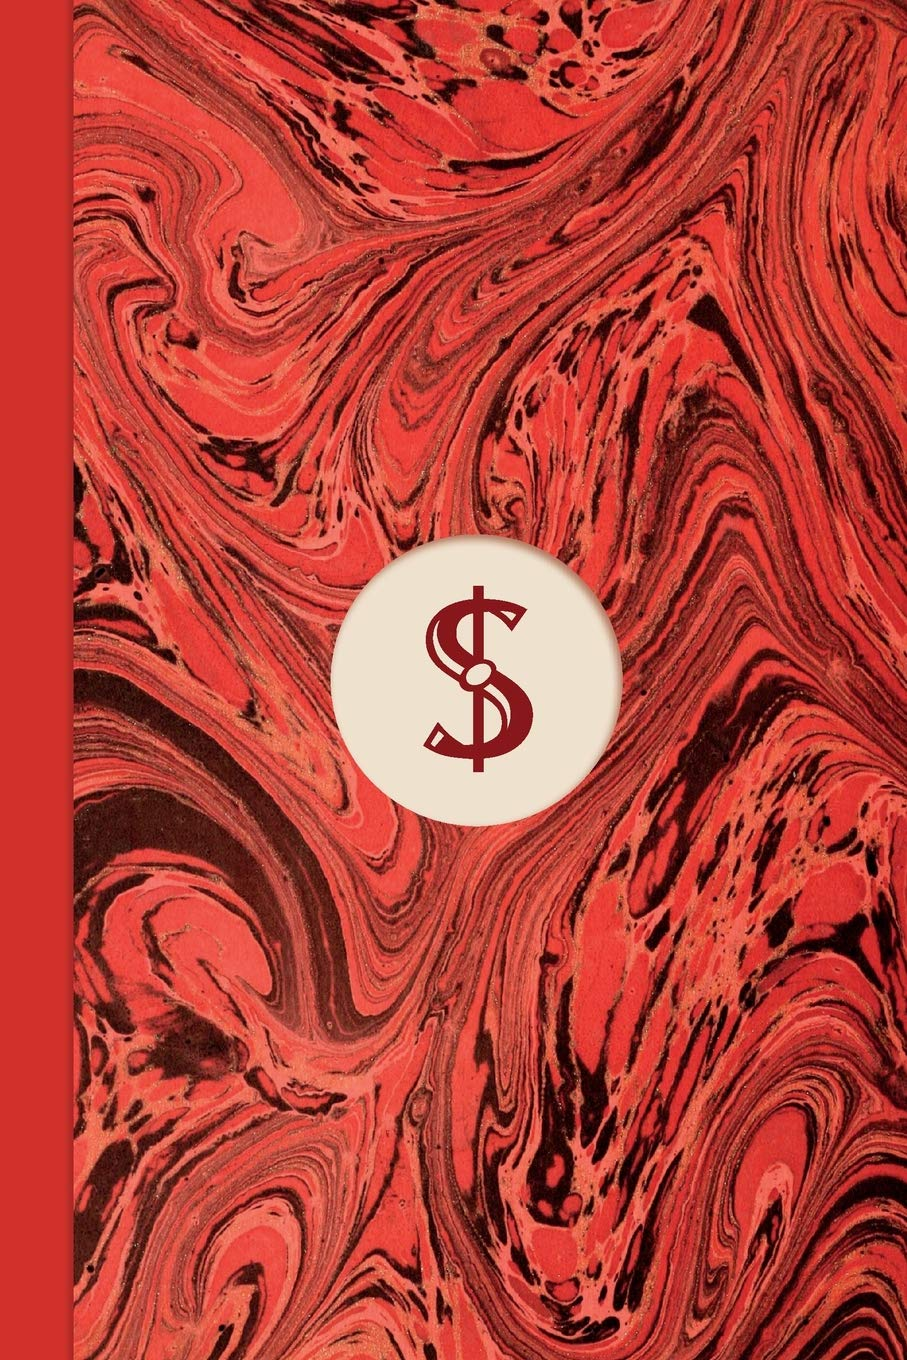 Monogram Symbol Dollar Sign Money Management Marble Notebook Regency Red Edition Blank Lined Journal For Writing Money Finance Budgets Savings Expenses Accounts Trade Entrepreneurship Coffee Shop Shakespeare 9781792175626 Amazon Com Books